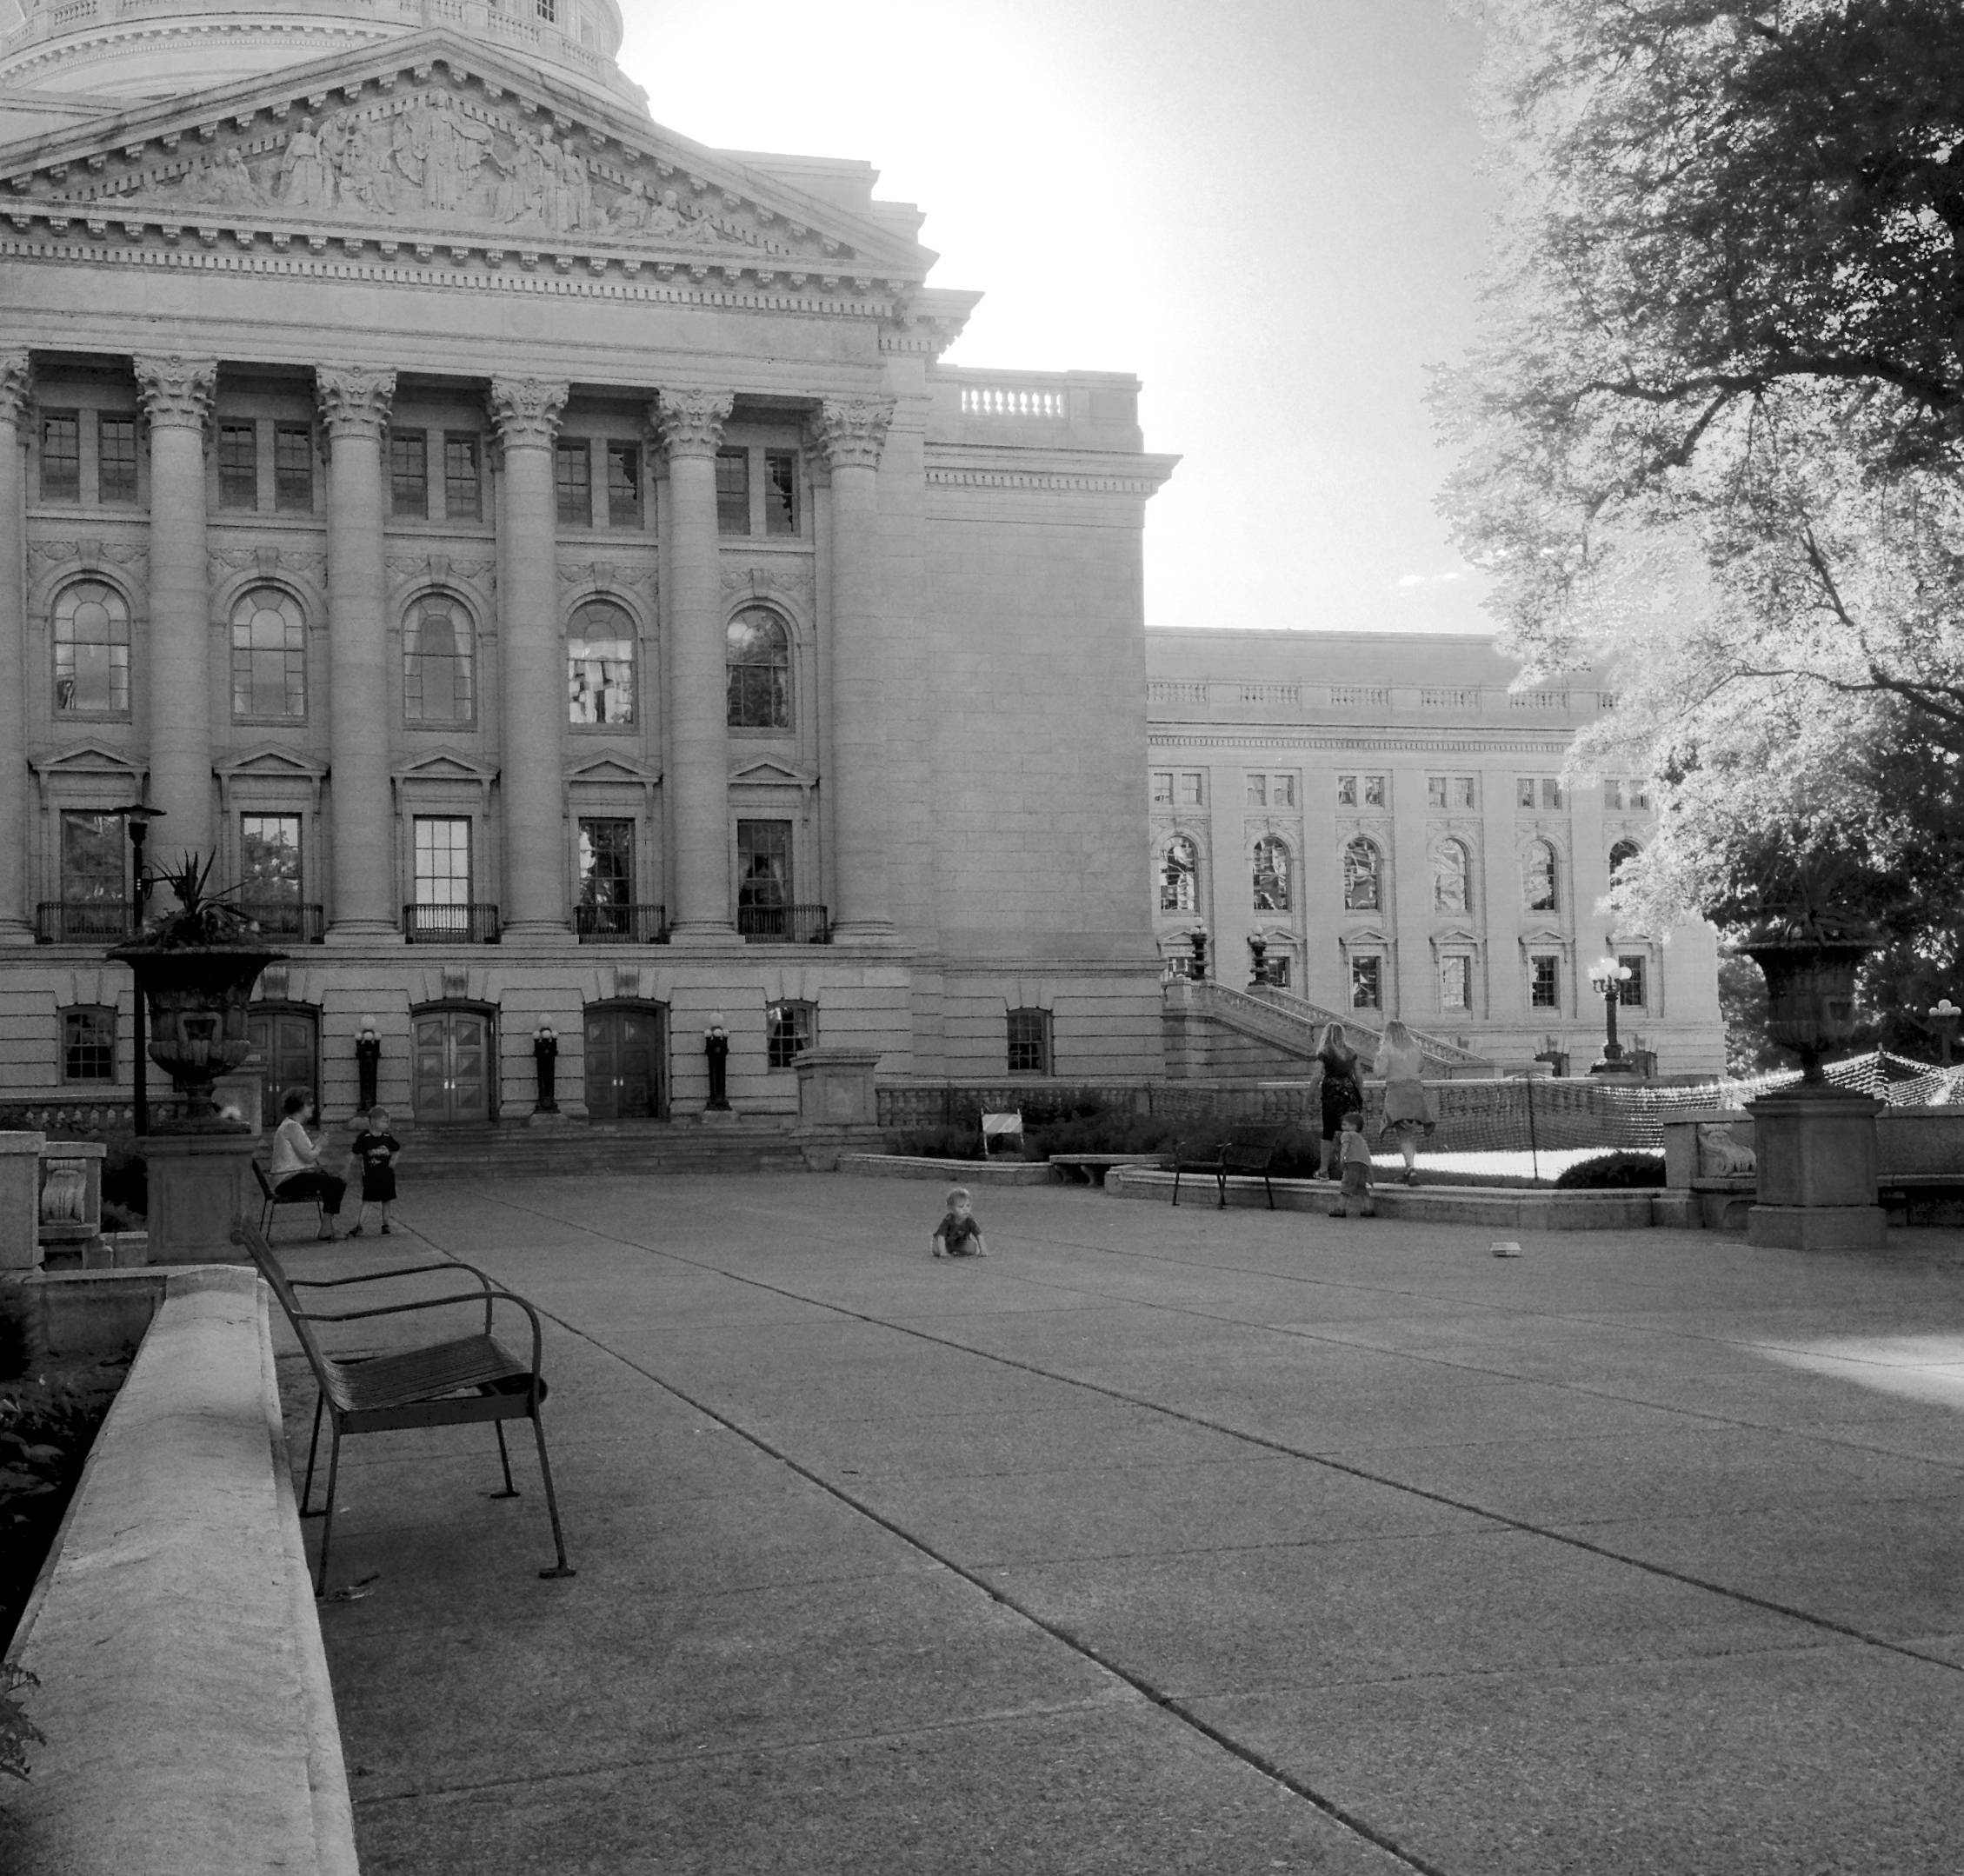 Crouch. State Capitol. Madison, Wisconsin. June 2016. © William D. Walker